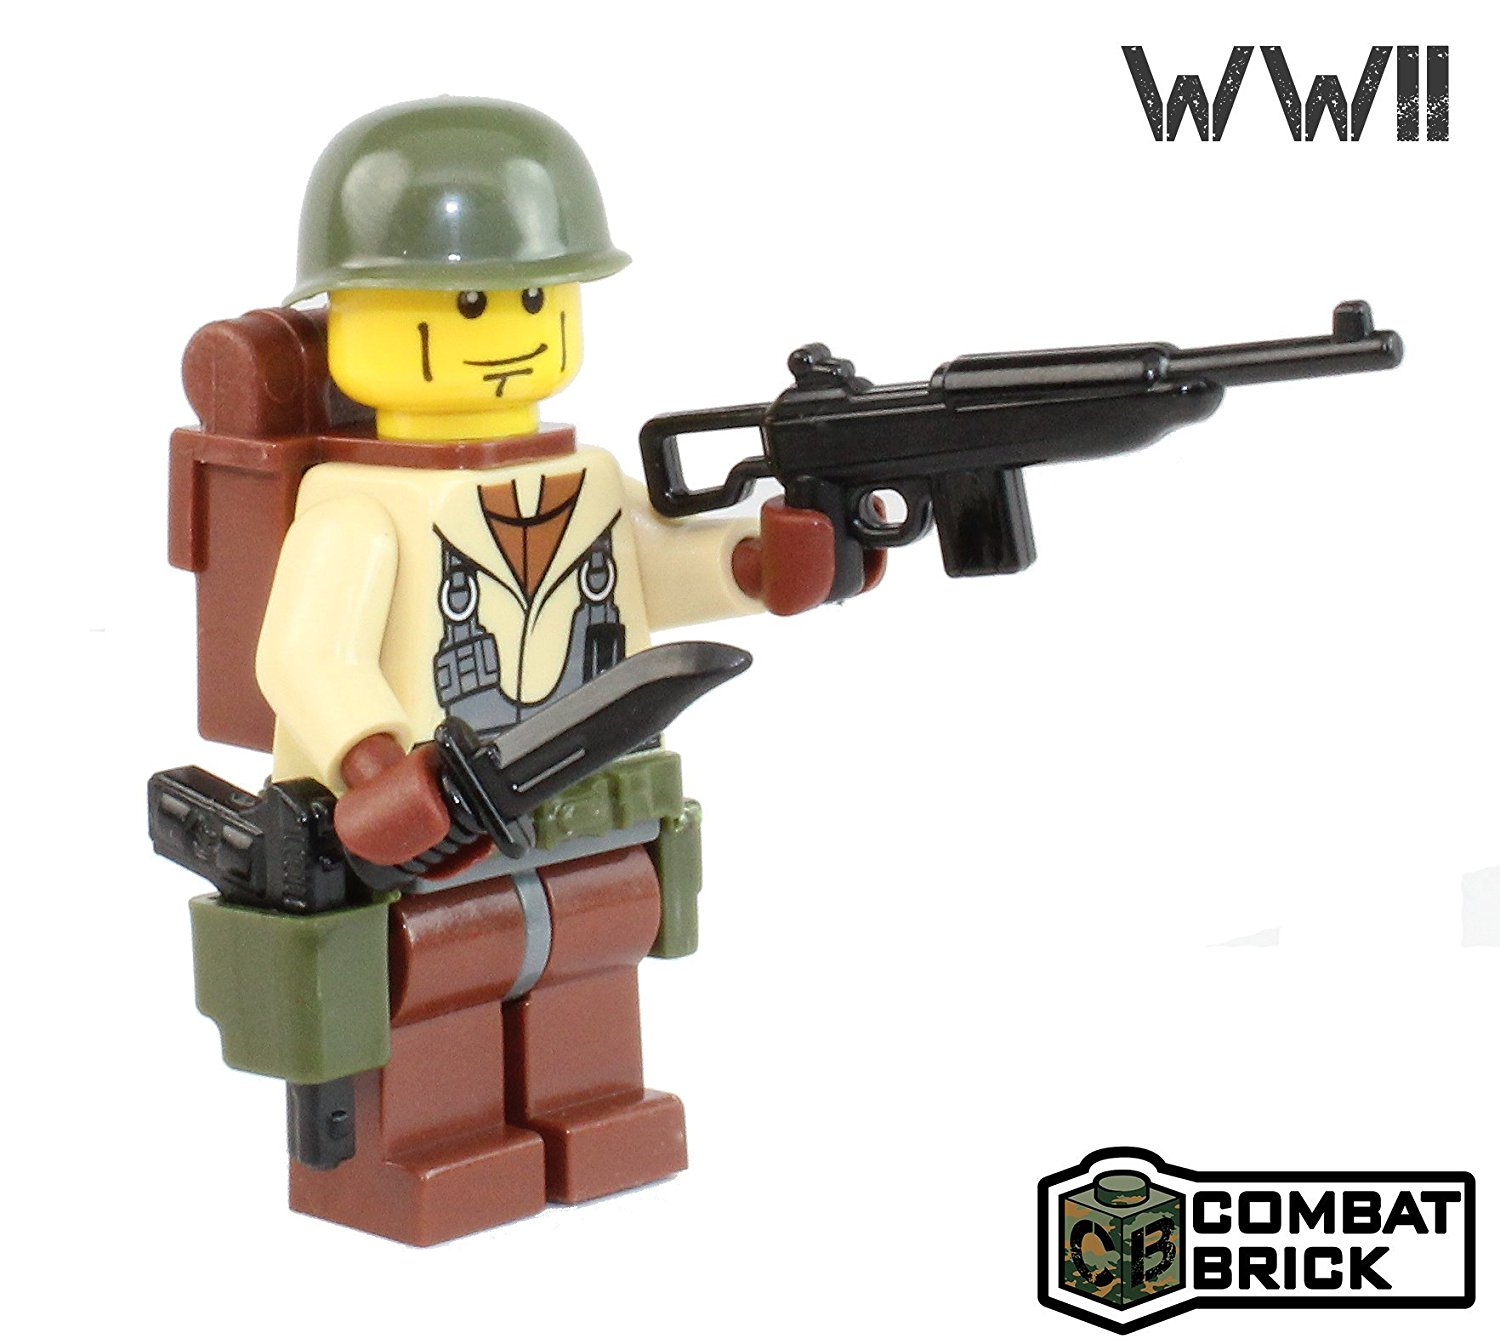 US Army WW2 101st Airborne Paratrooper : WW2 Action Figure and weapons - Custom Military Brick Builder Minifigure by CombatBrick